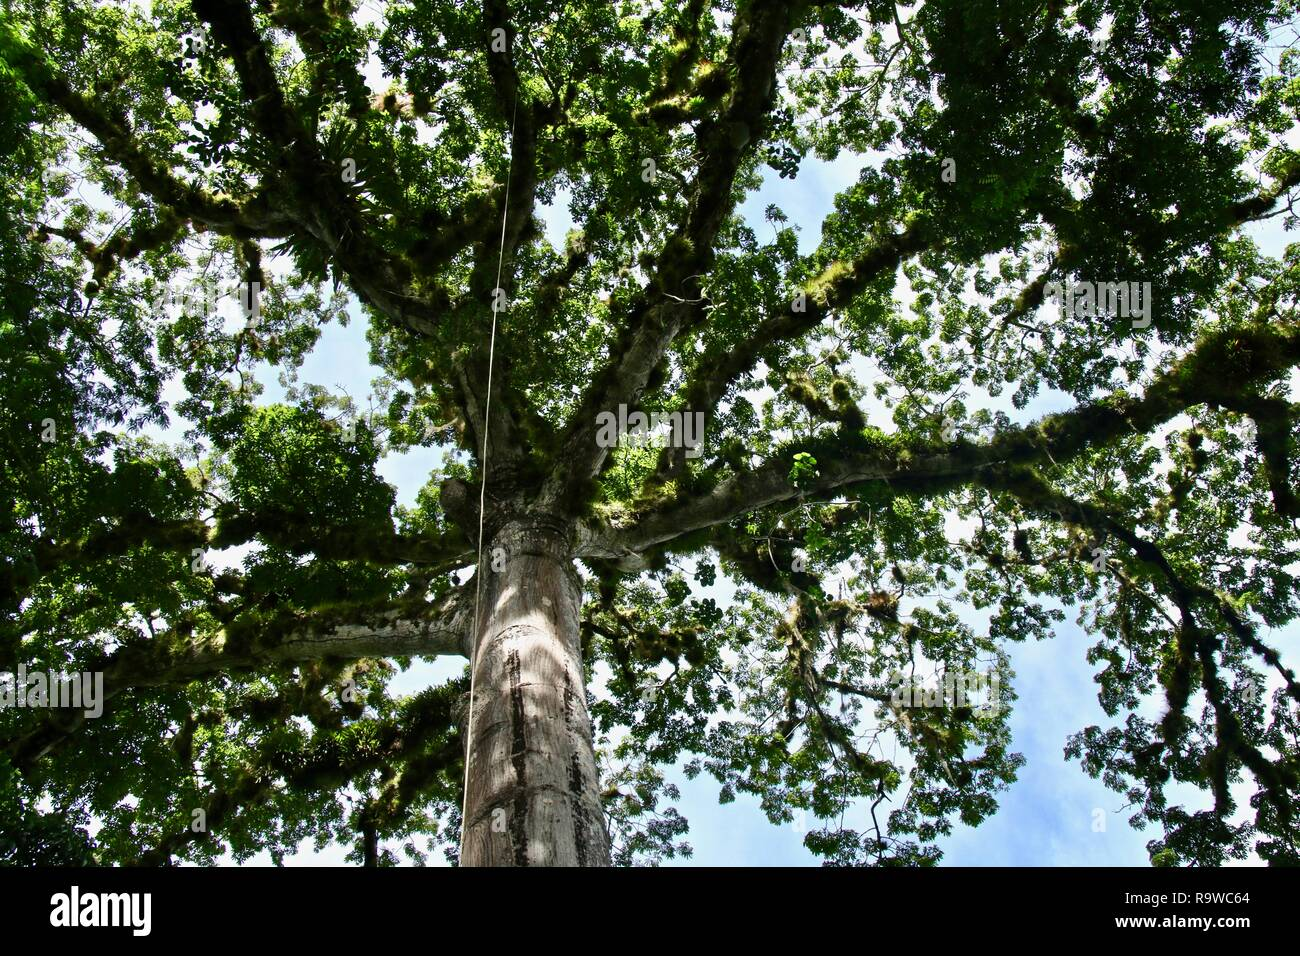 In the jungle lying under a giant white ceiba trees canopy and looking up into the sky, this tree is sacred to the Maya - Stock Image